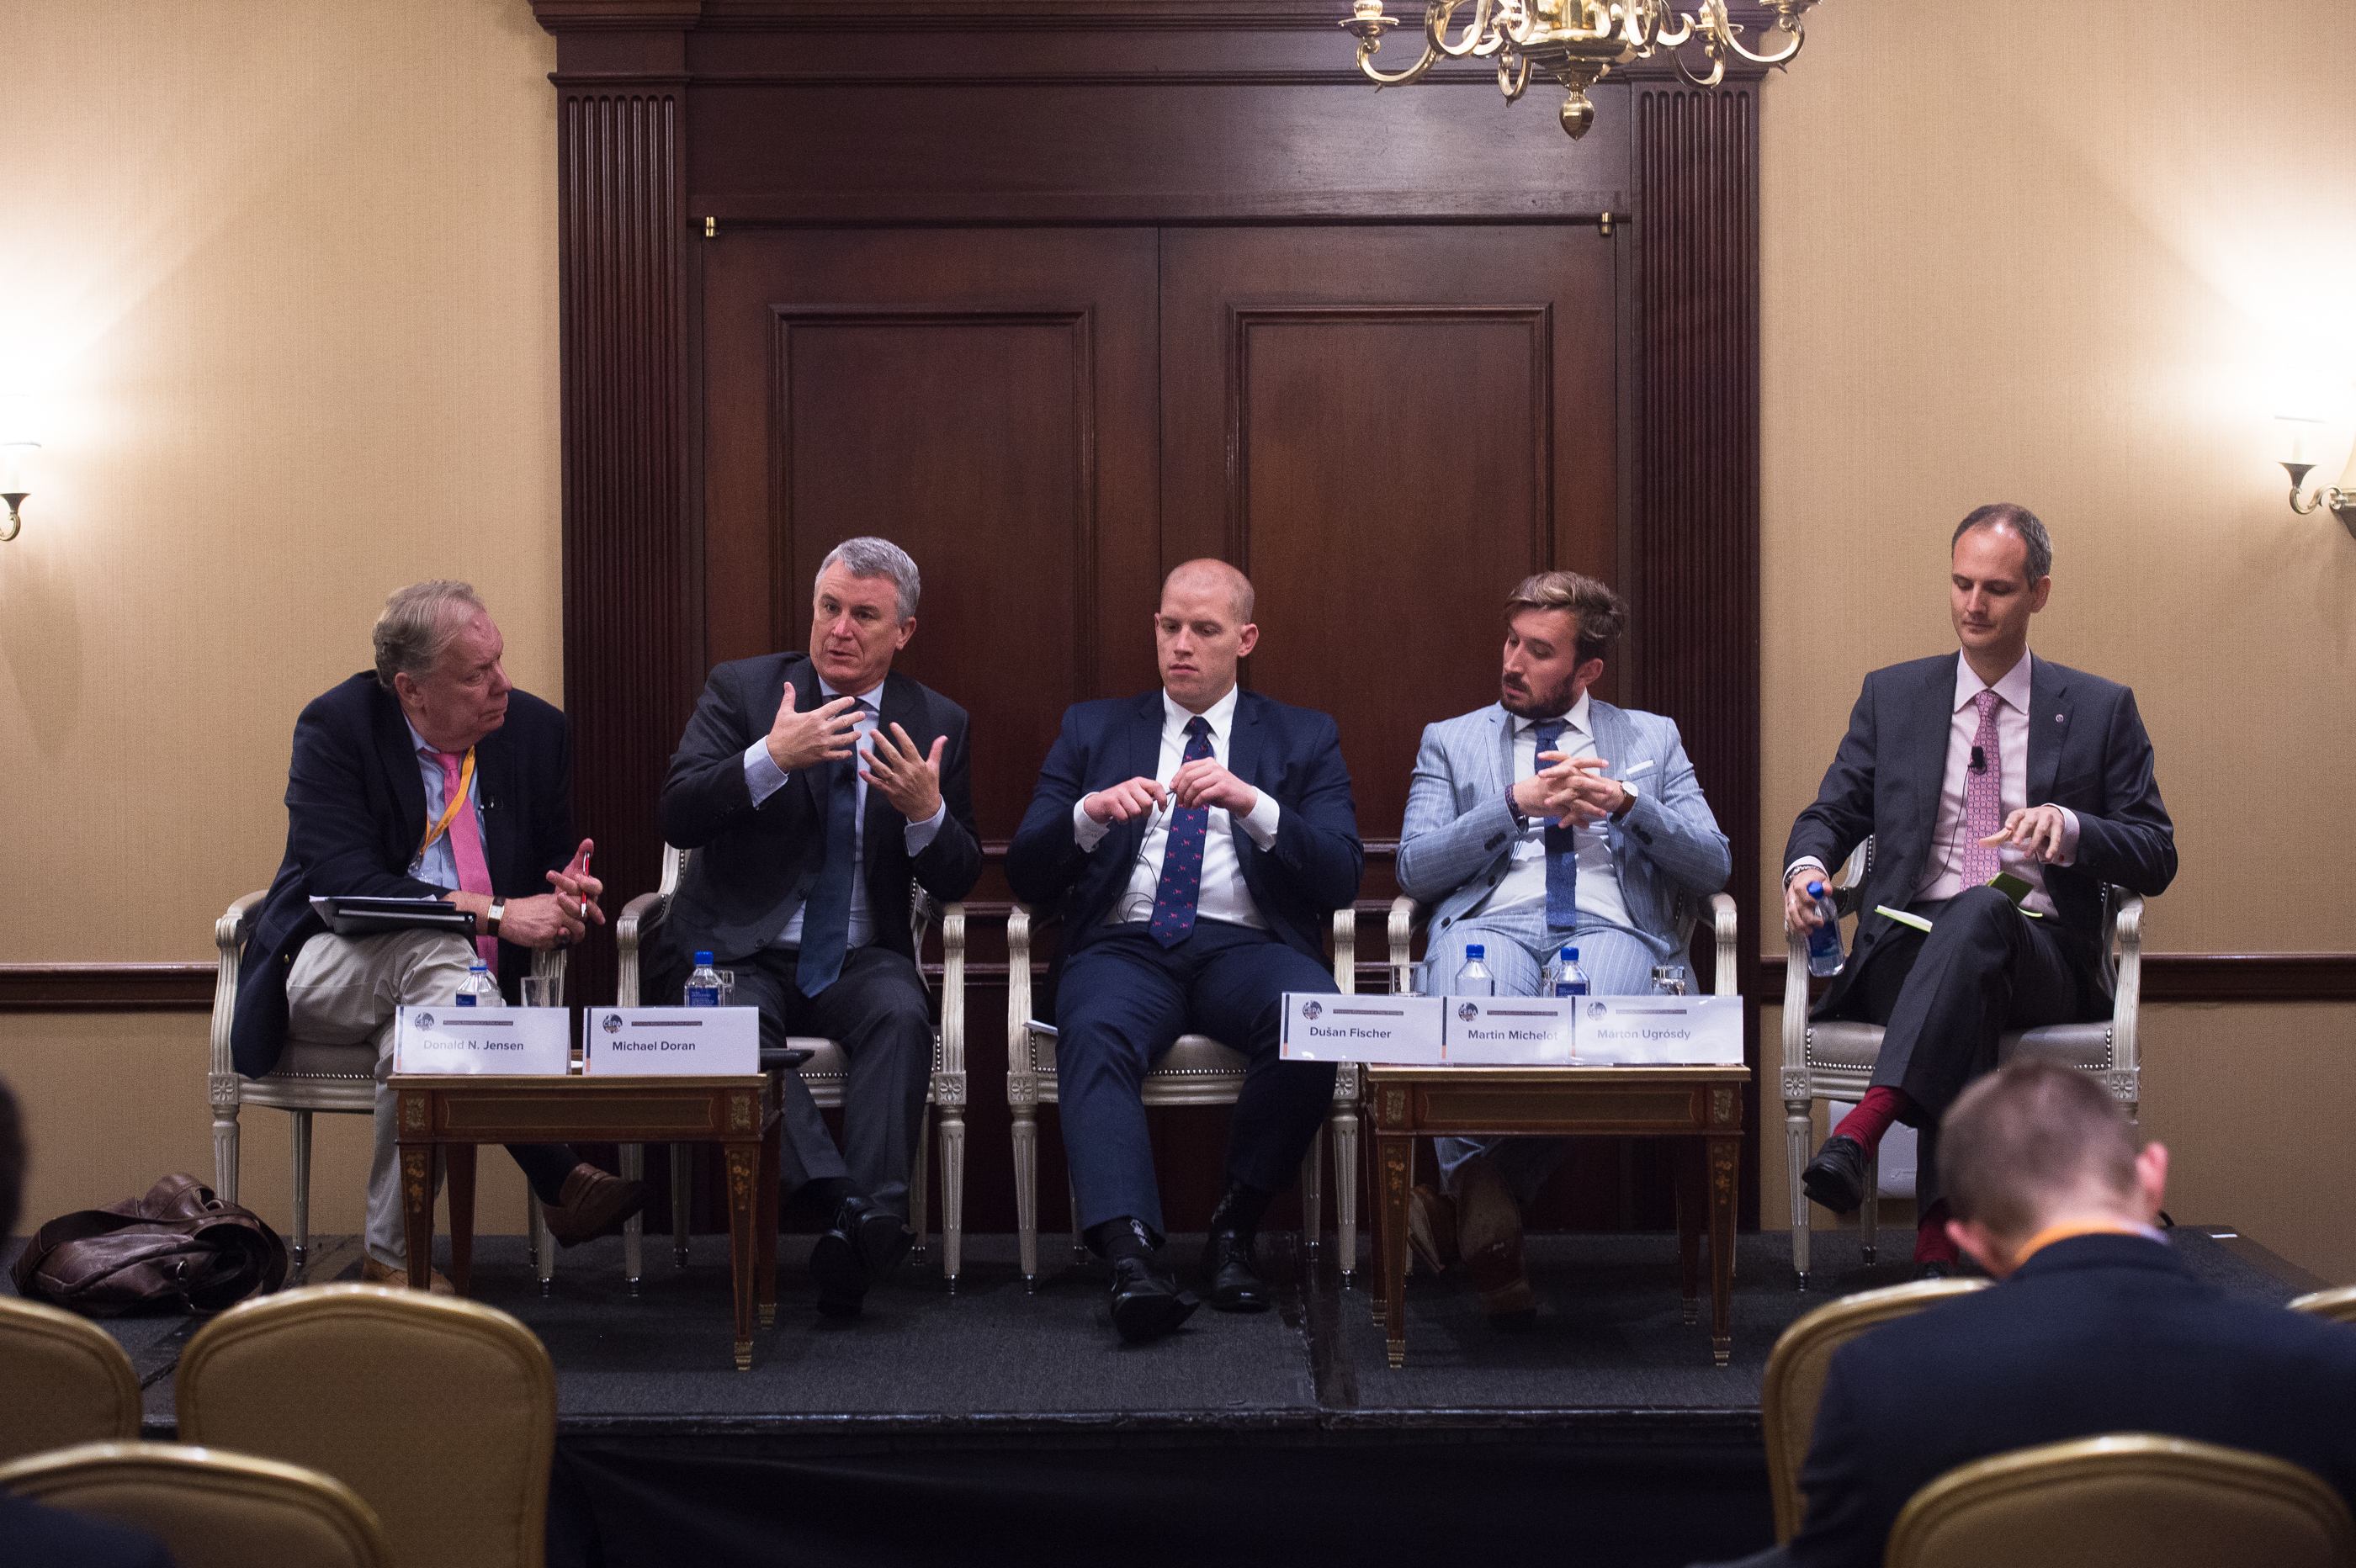 Dusan Fischer (center) participates in CEPA Forum panel on Migration and Security (Photo courtesy of CEPA)